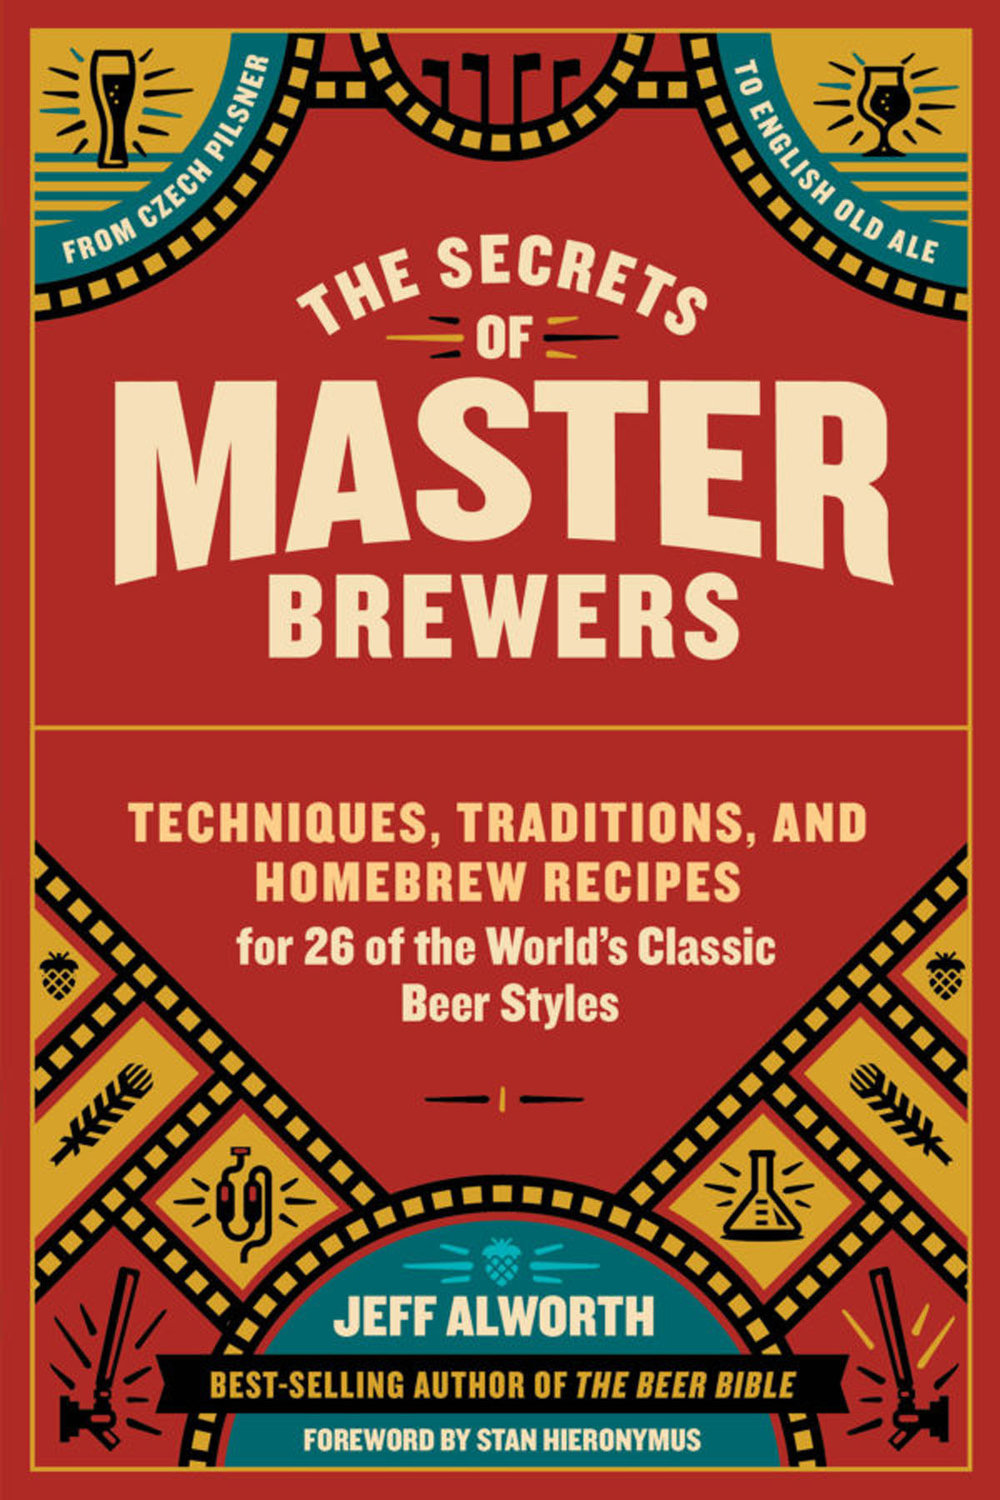 Alworth, Jeff THE SECRETS OF MASTER BREWERS.jpg